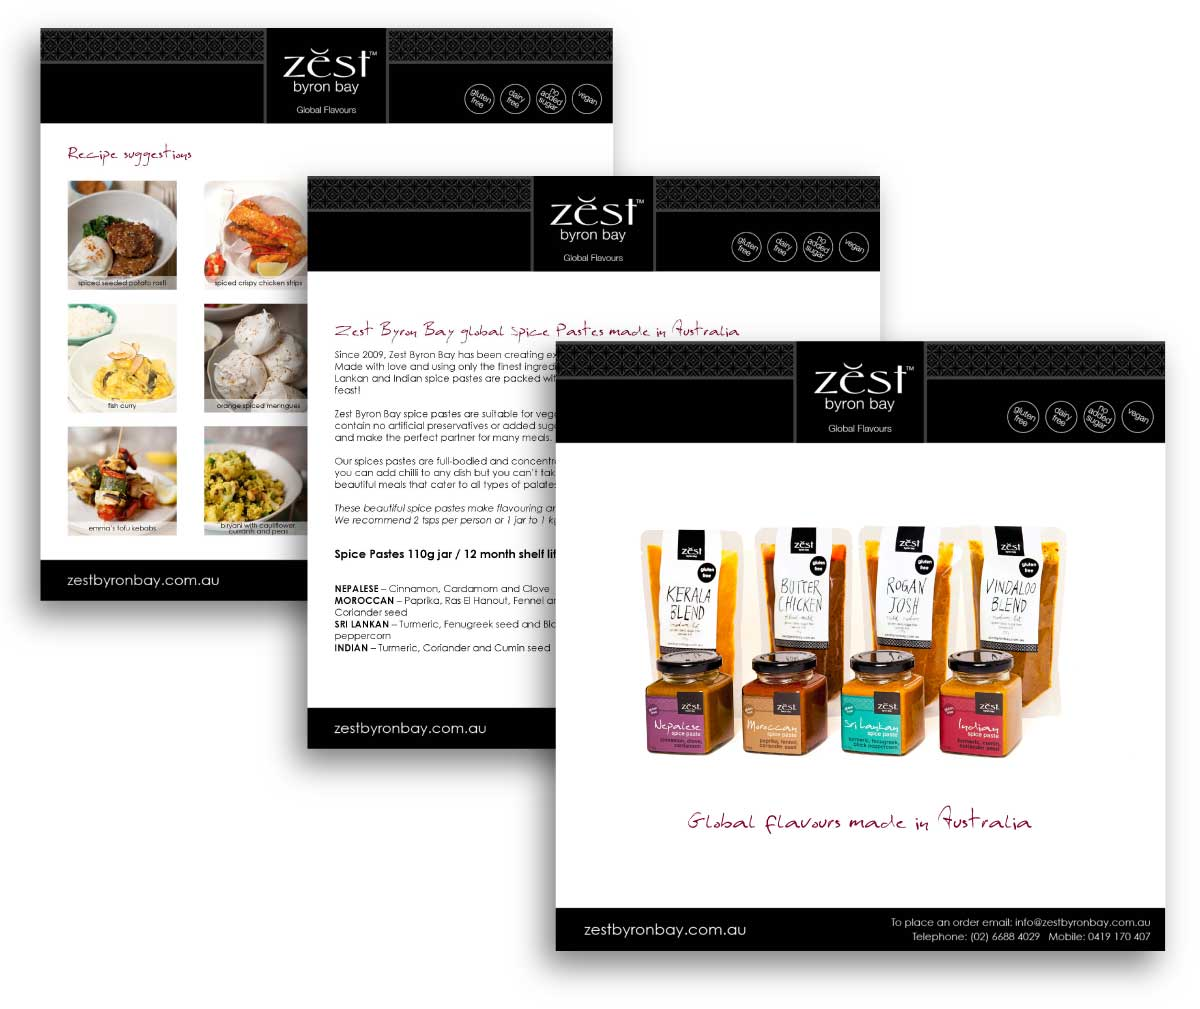 Zest Byron Bay | media kit designed by accurate expressions